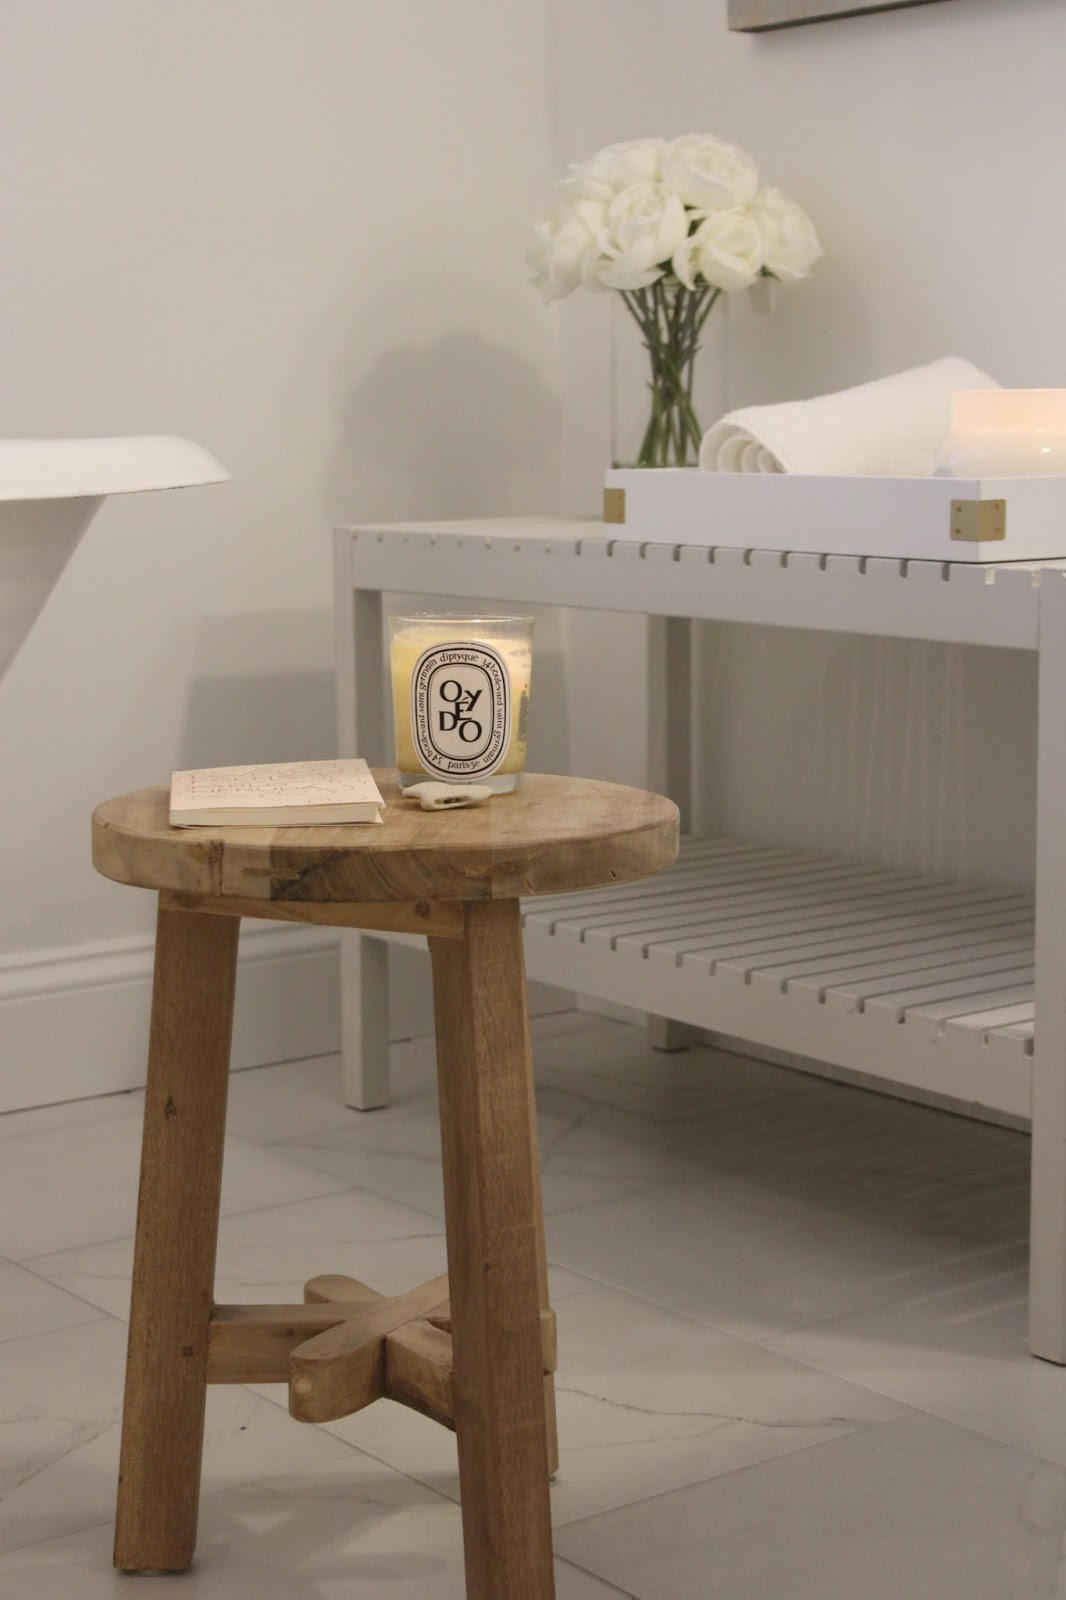 Diptyque candle on rustic wood stool in white bathroom - Hello Lovely Studio